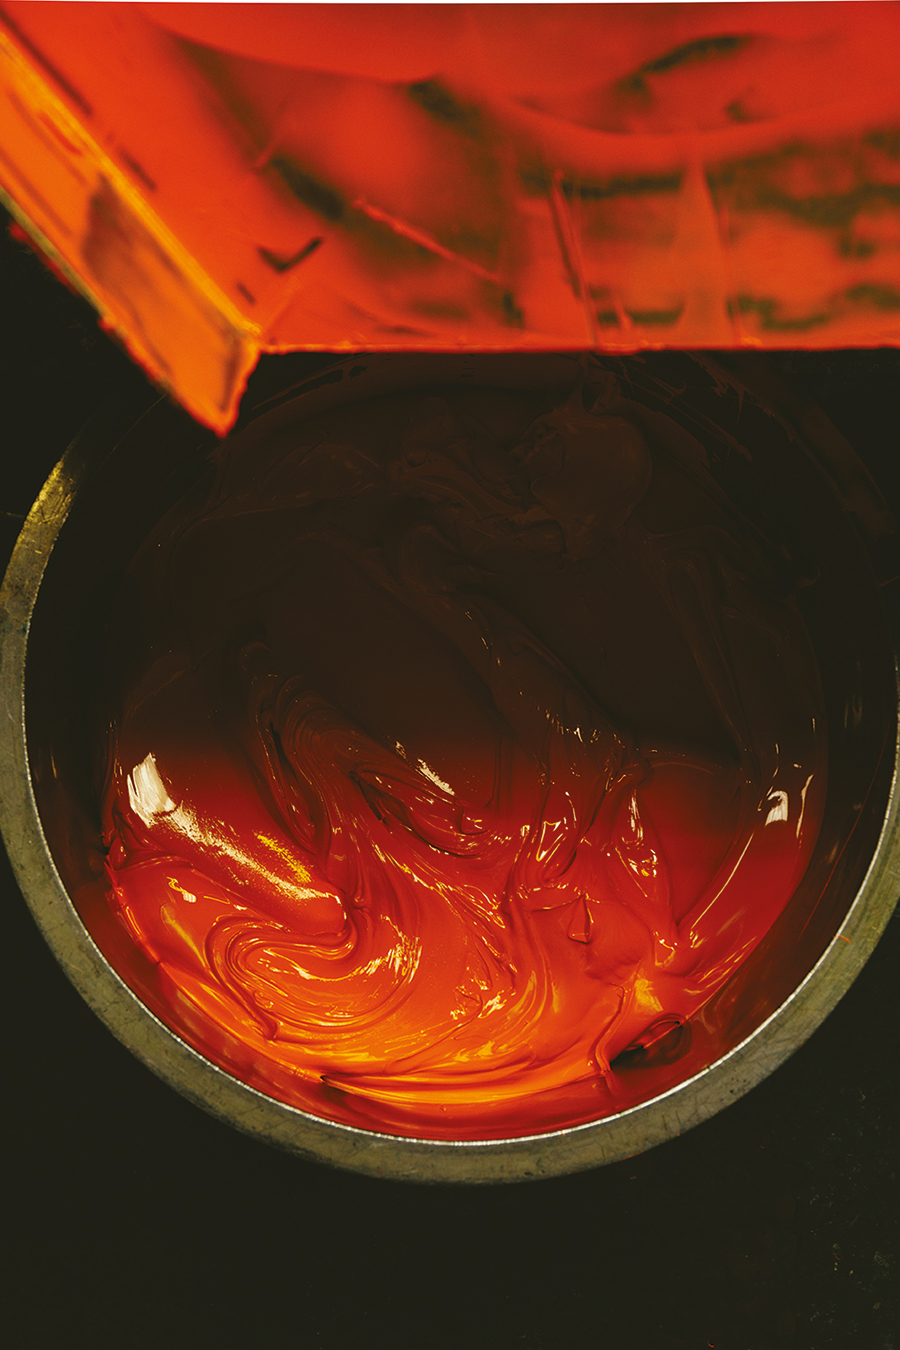 the differences between grades of oil paint